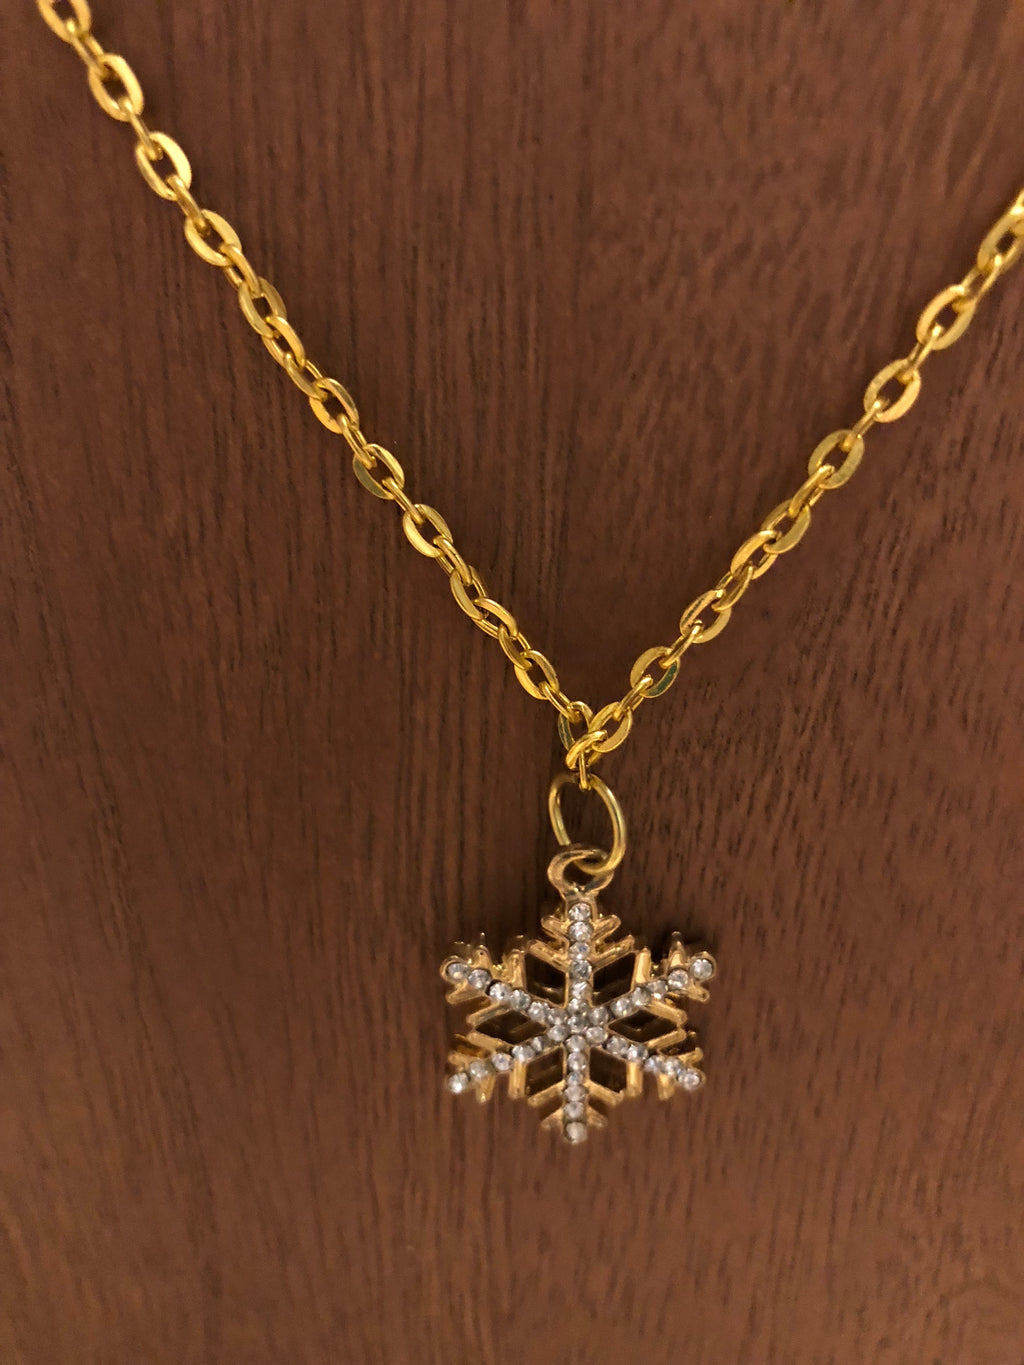 Beautiful gold chain necklace with snowflake pendant